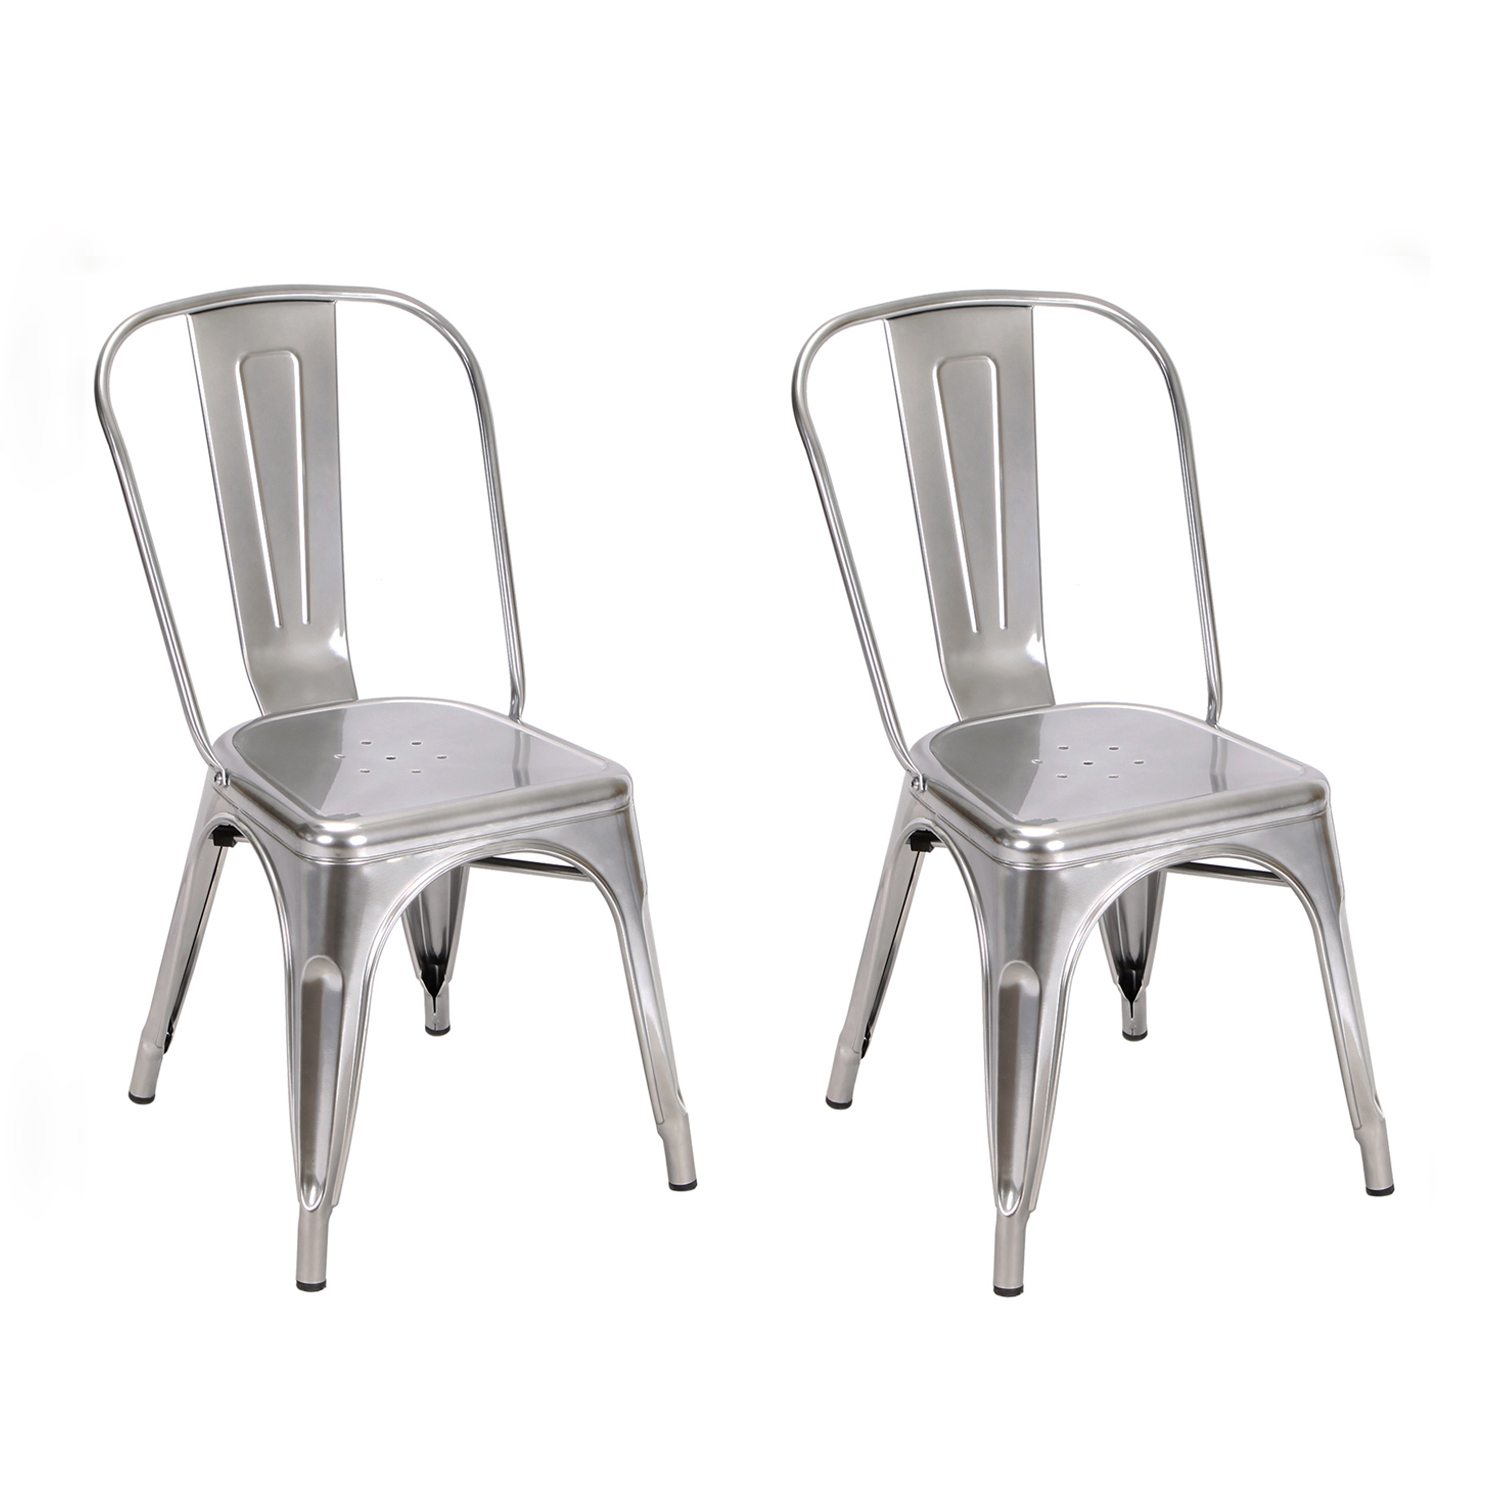 silver metal dining chairs folding barber chair decenthome white